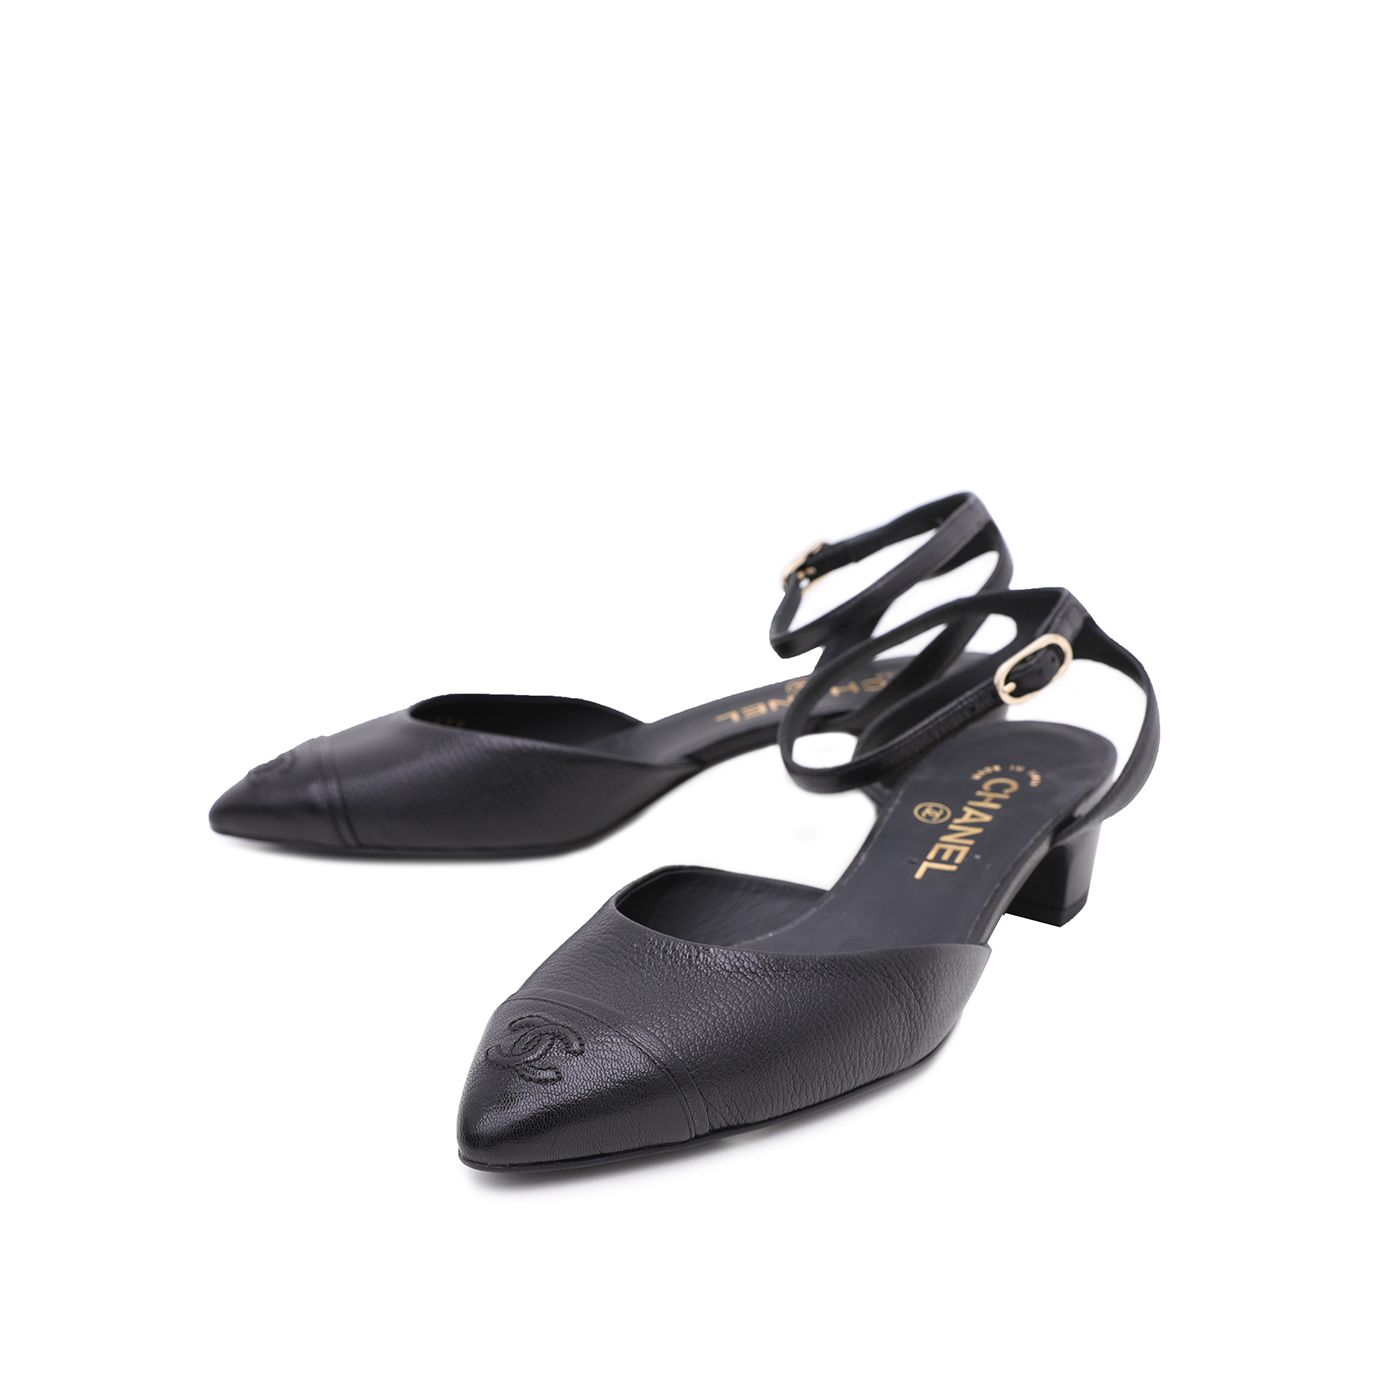 Chanel Black CC Goatskin Cap Toe Low Pumps 38.5